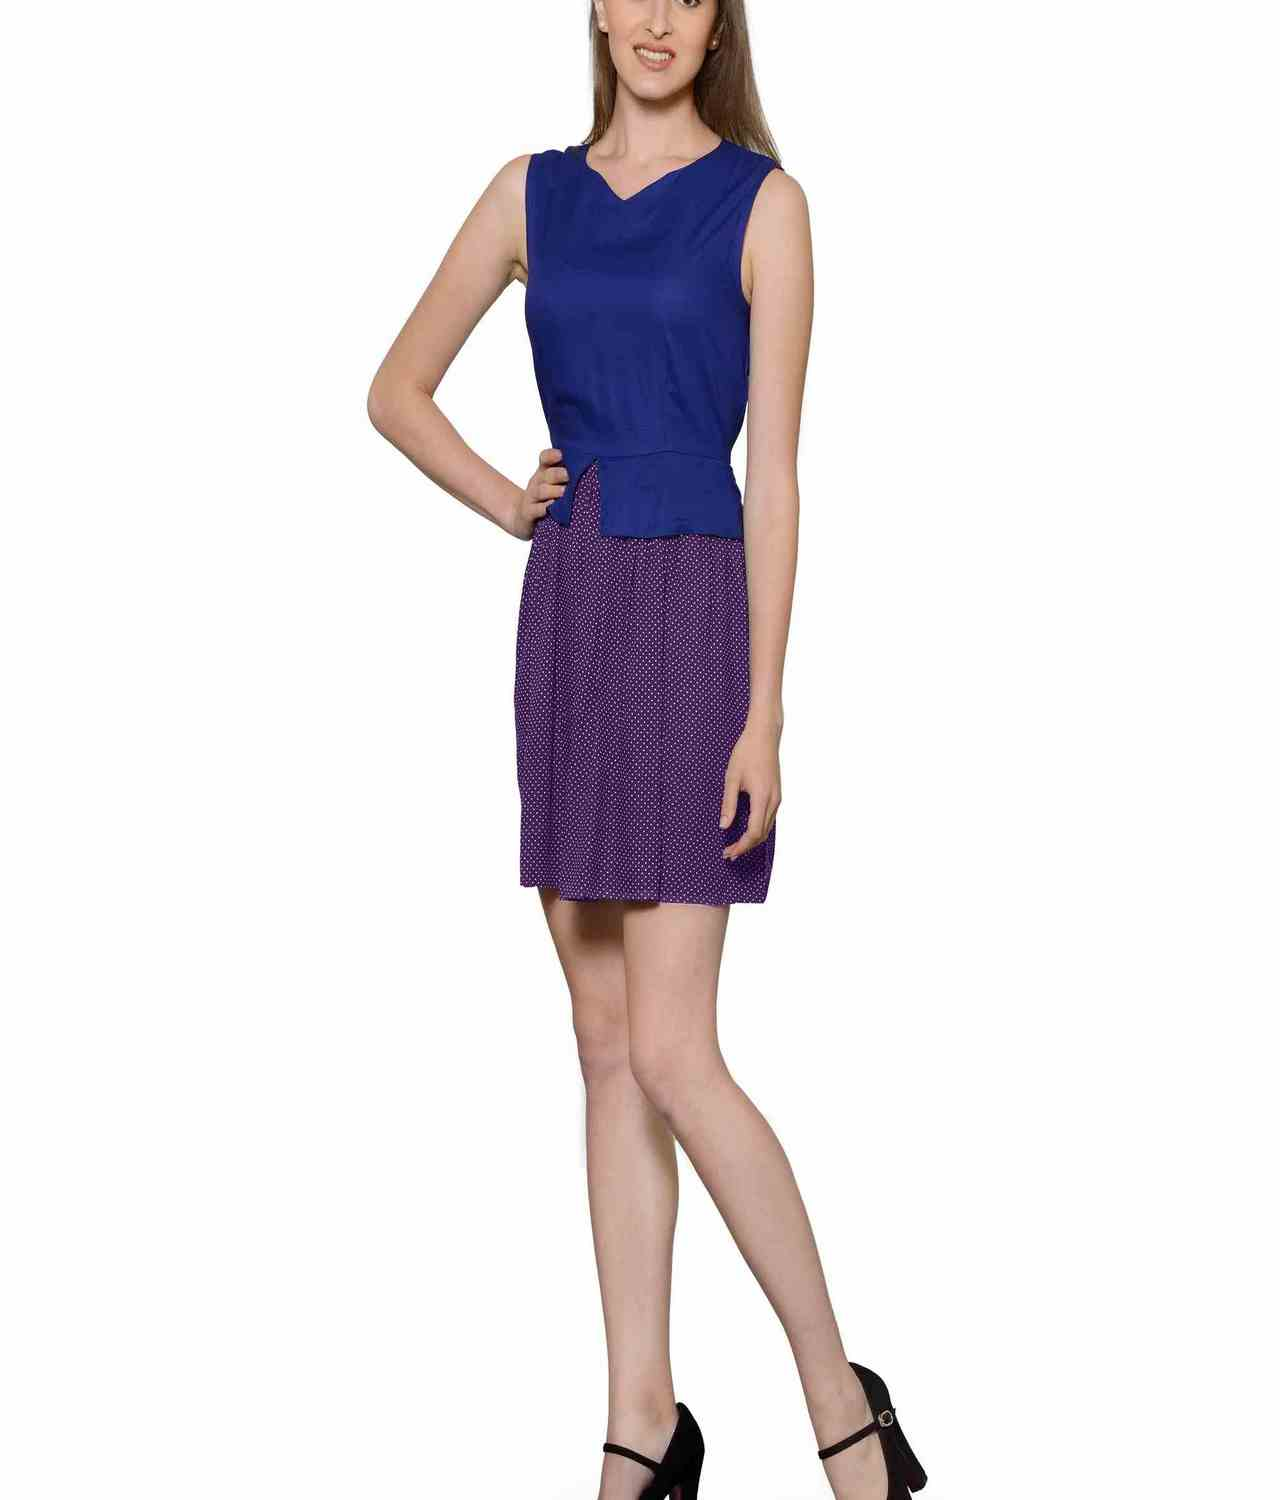 Top and Skirt Style Cocktail Mini Dress in Royal Blue:Purple Polka Dot